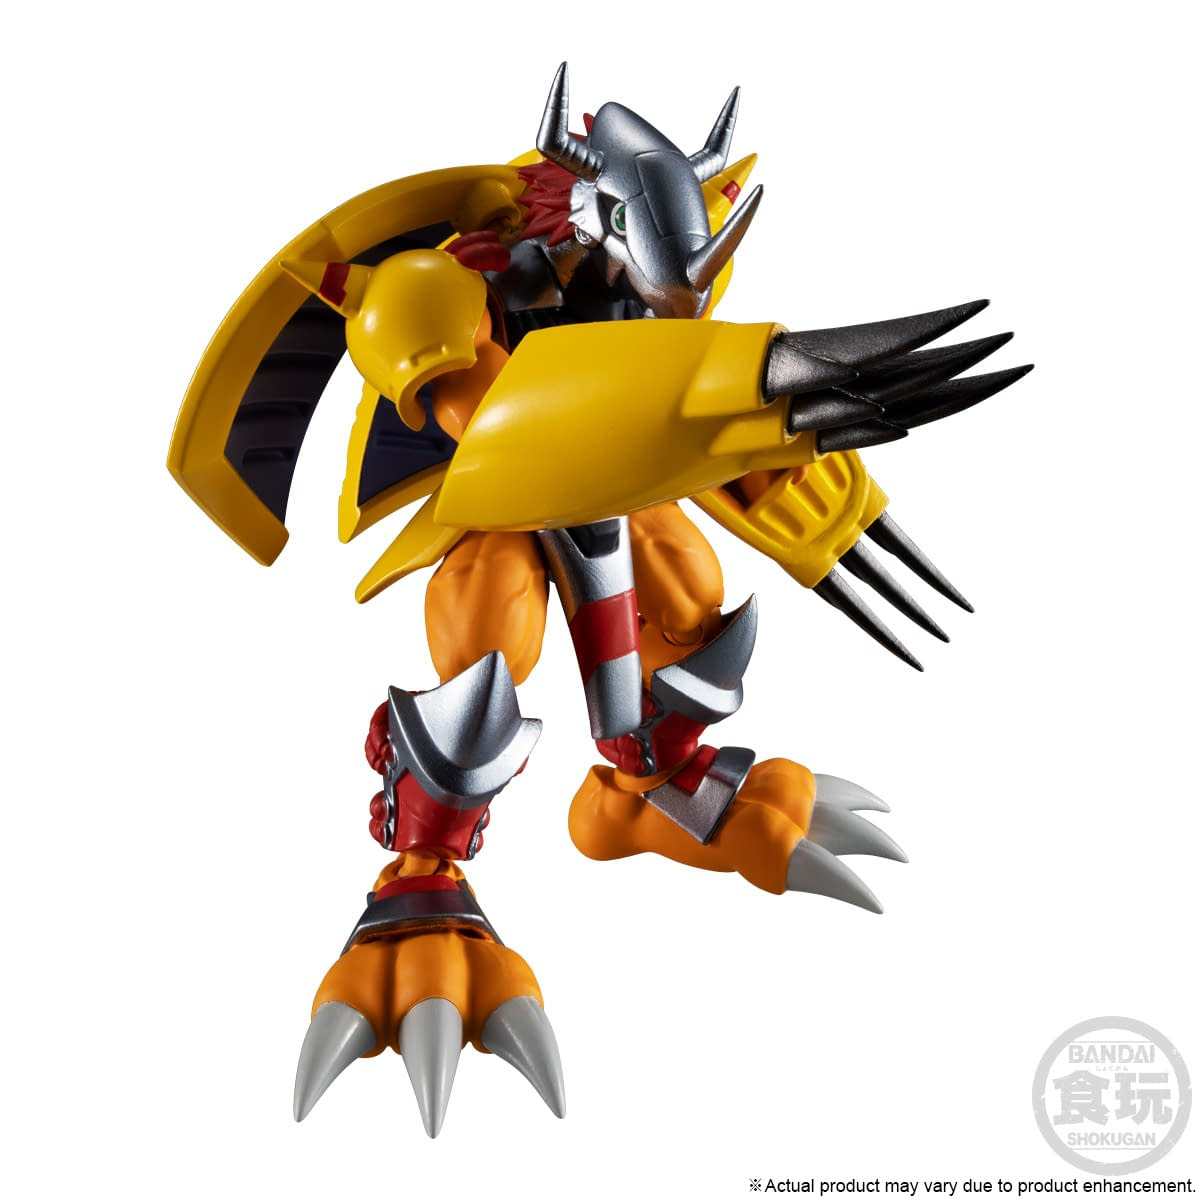 Digimon Digivolutions Get Complete Set of Figures with Bandai